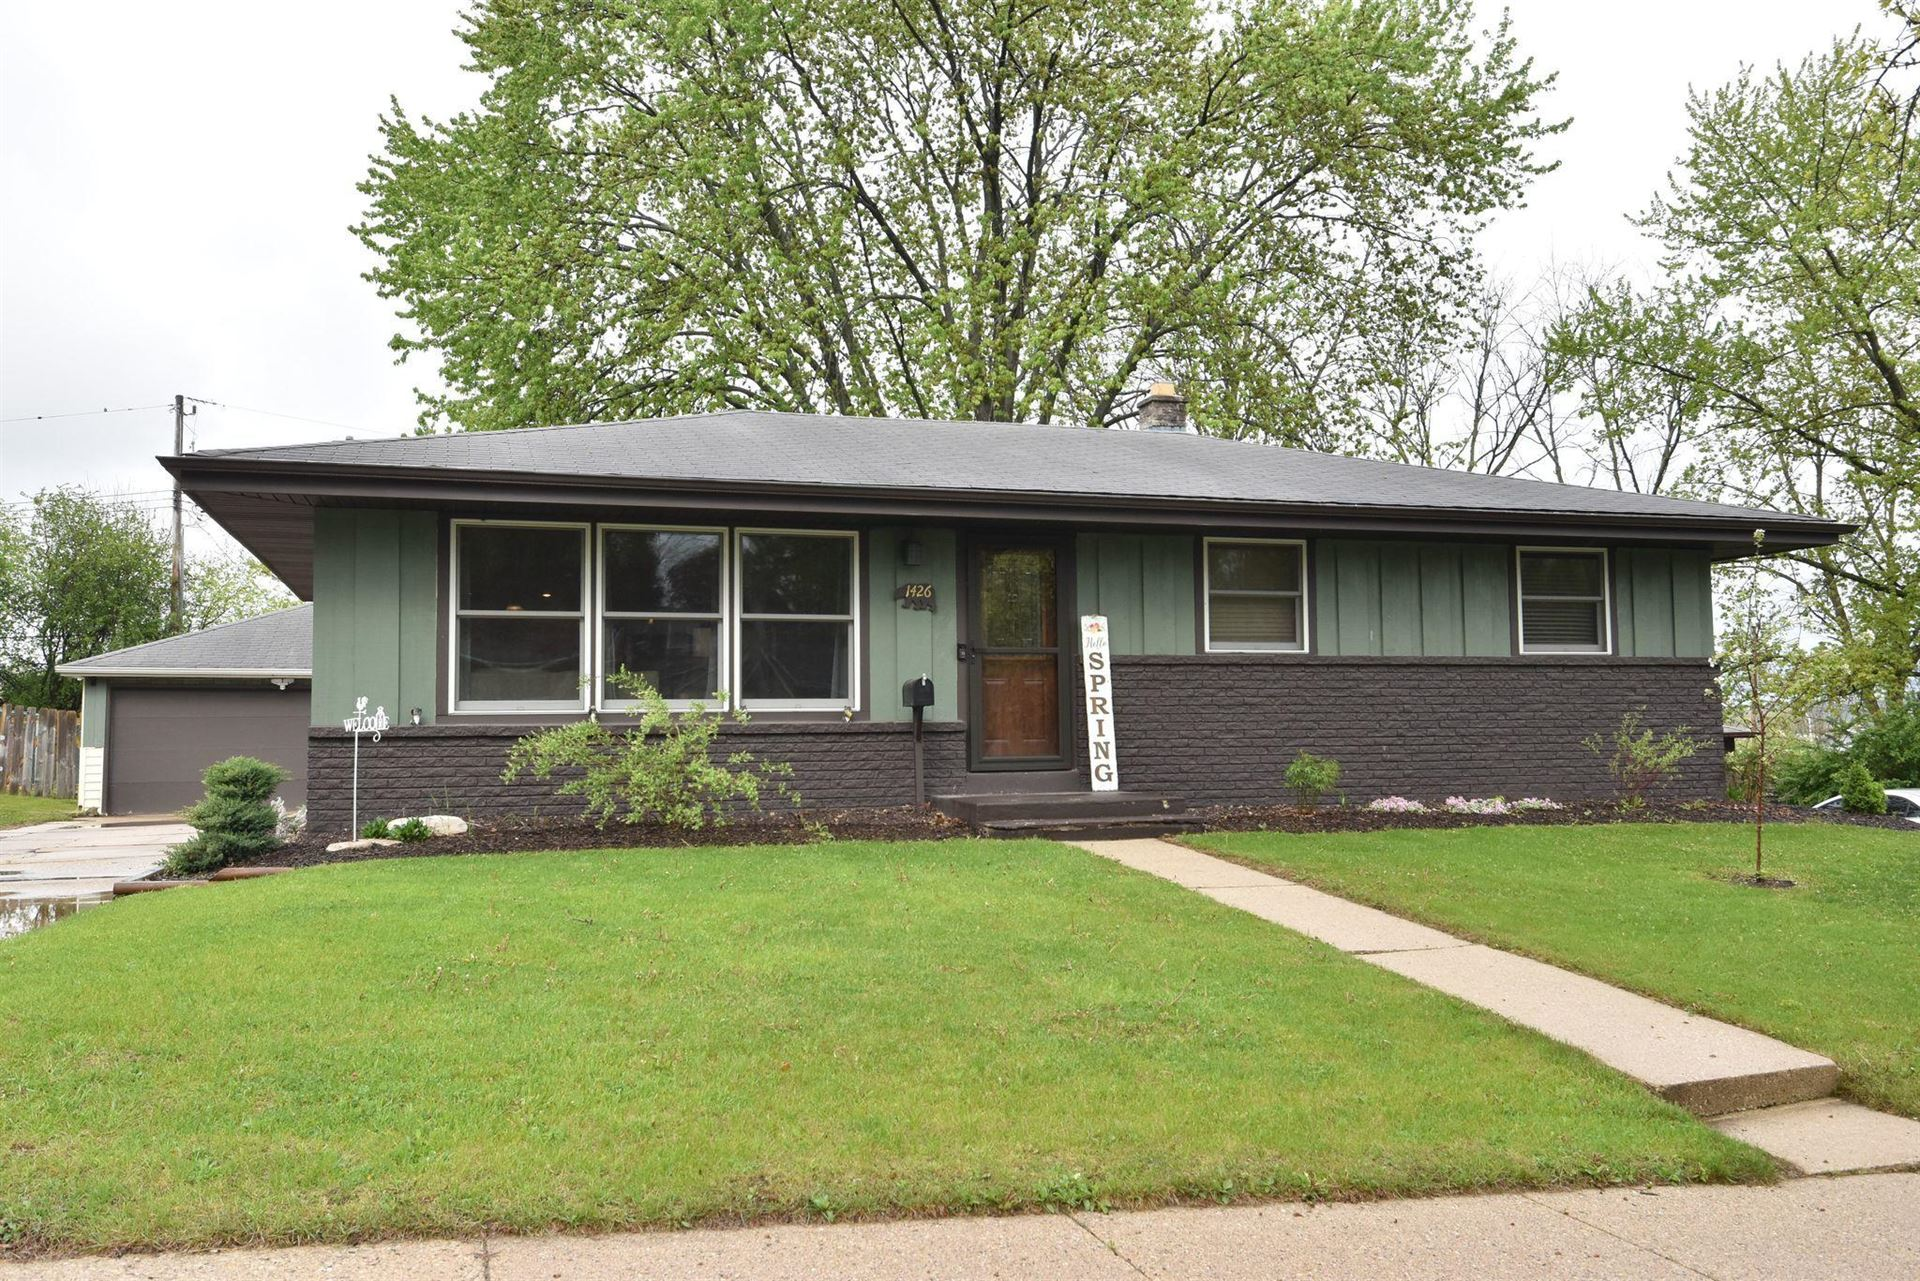 Photo for 1426 S Grand Ave, Waukesha, WI 53189 (MLS # 1739145)